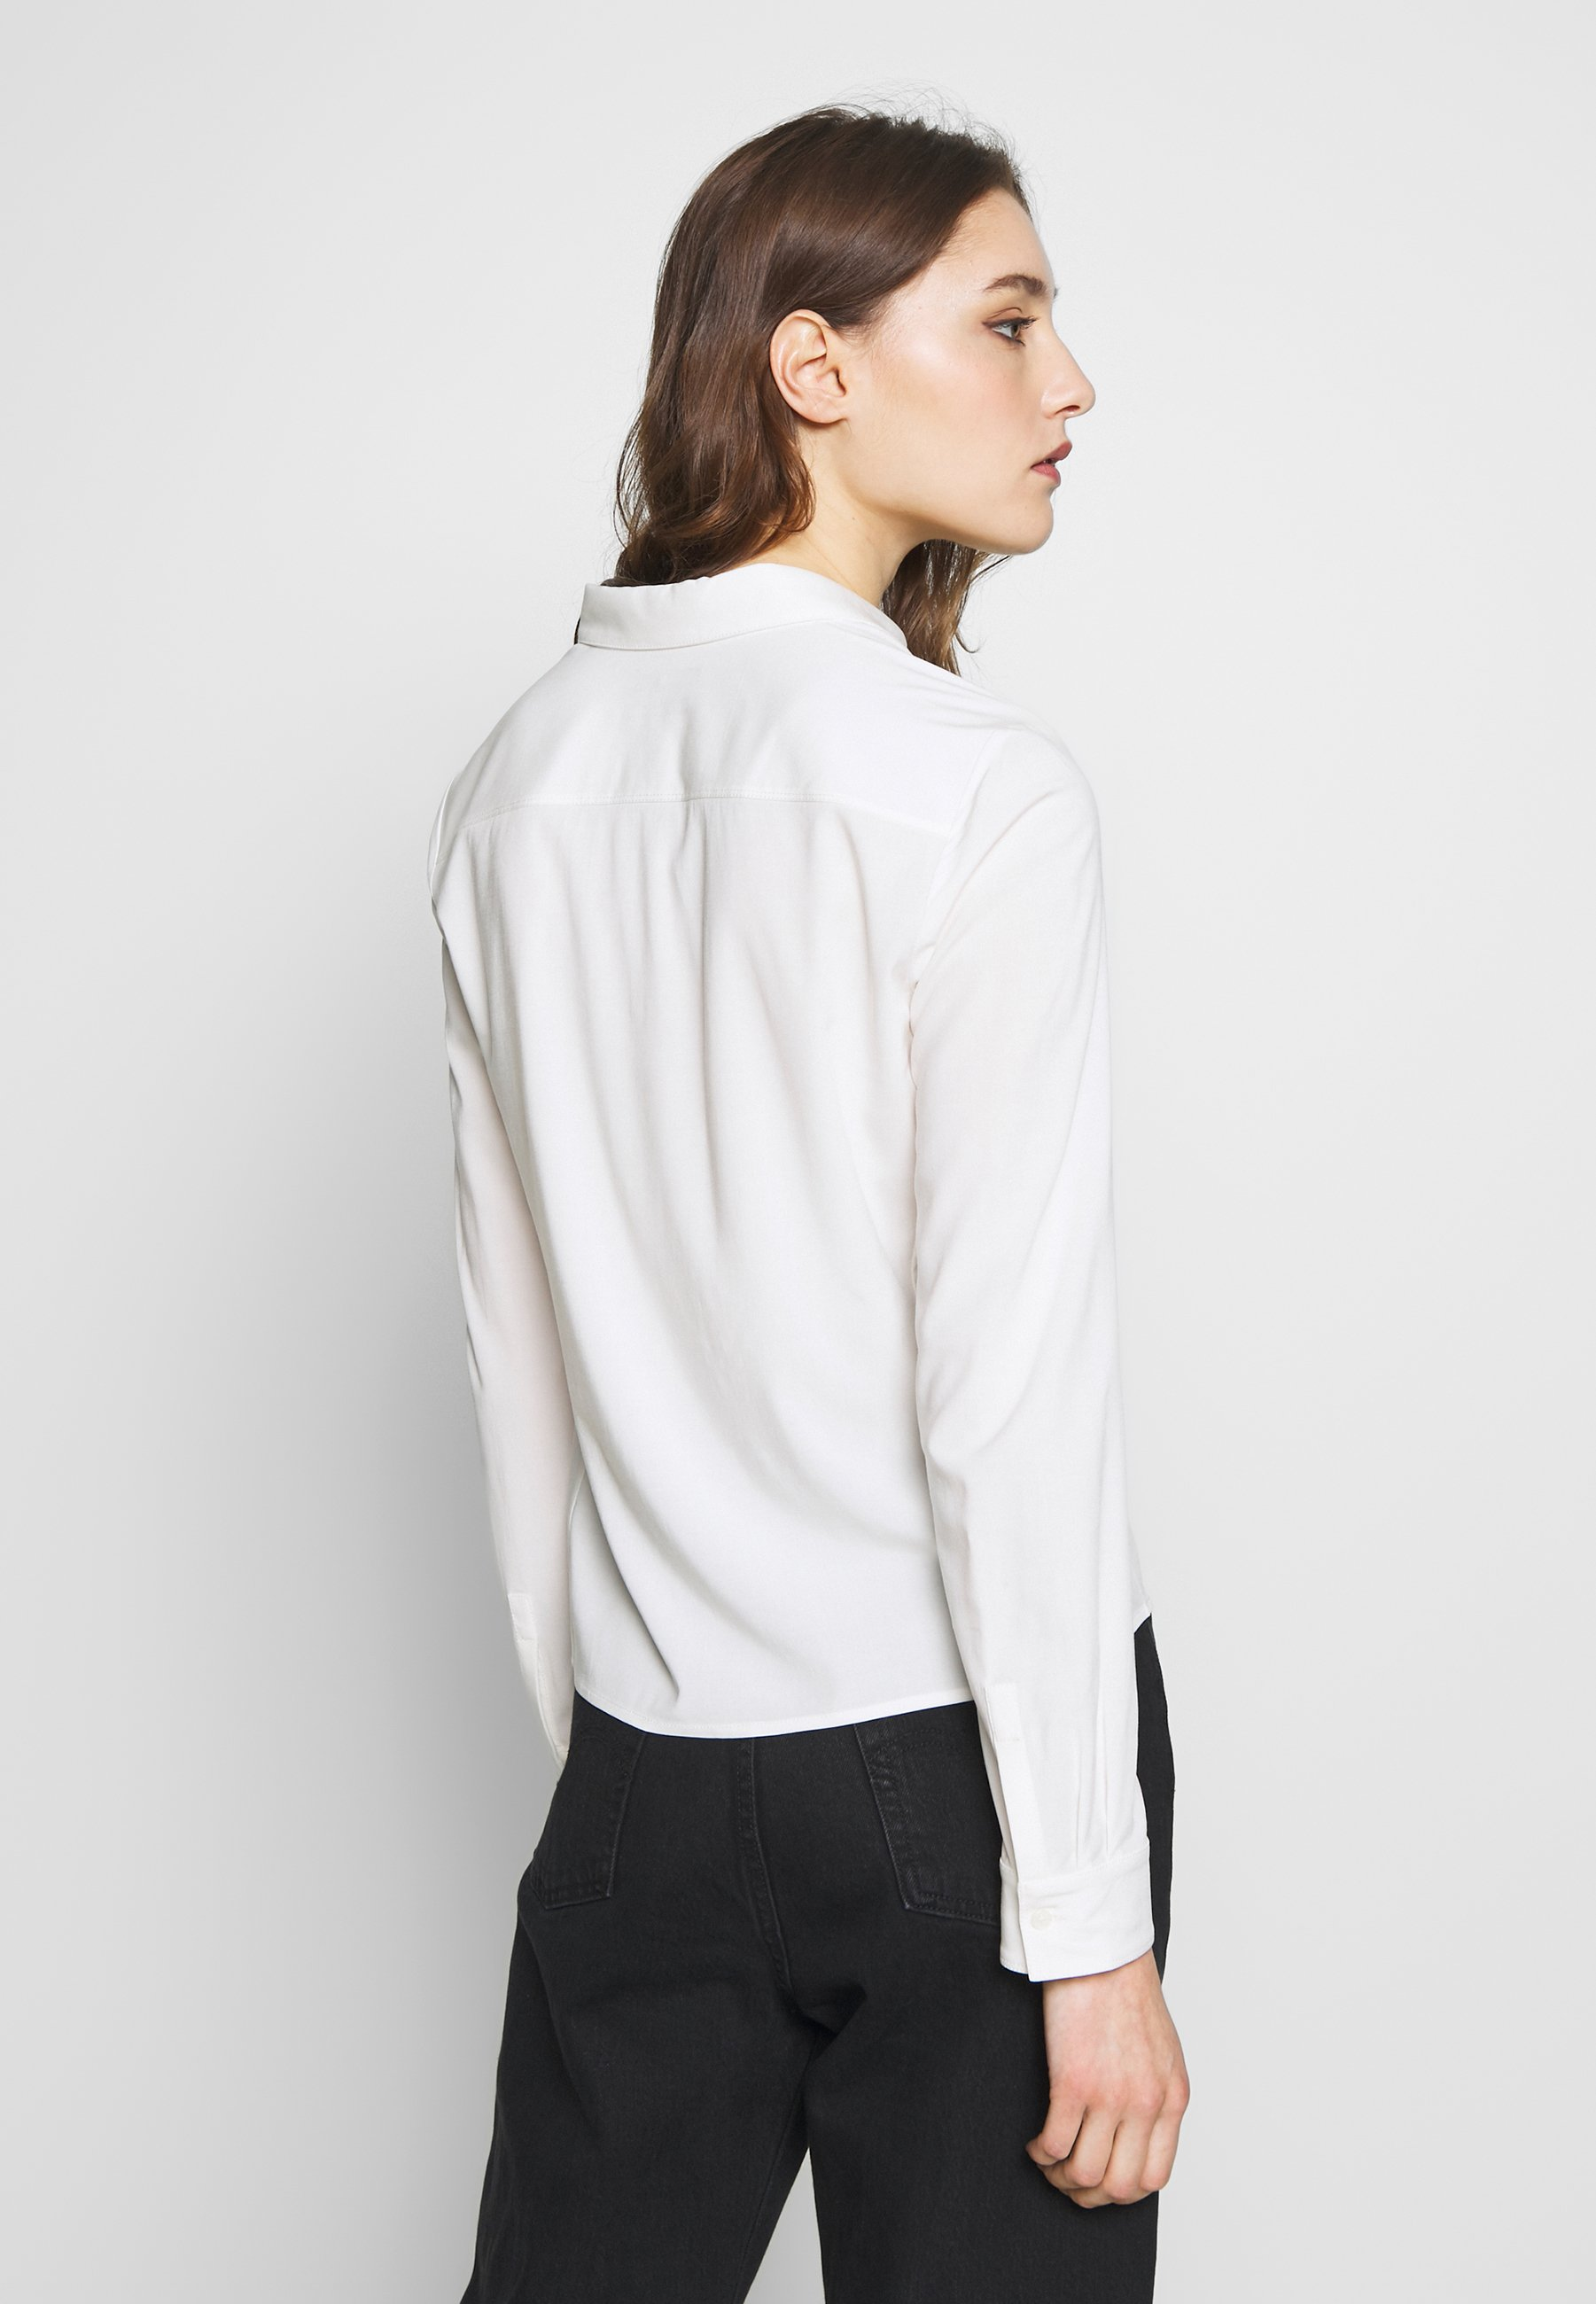 Marc O'polo Blouse Collar Long Sleeved - Off White UK